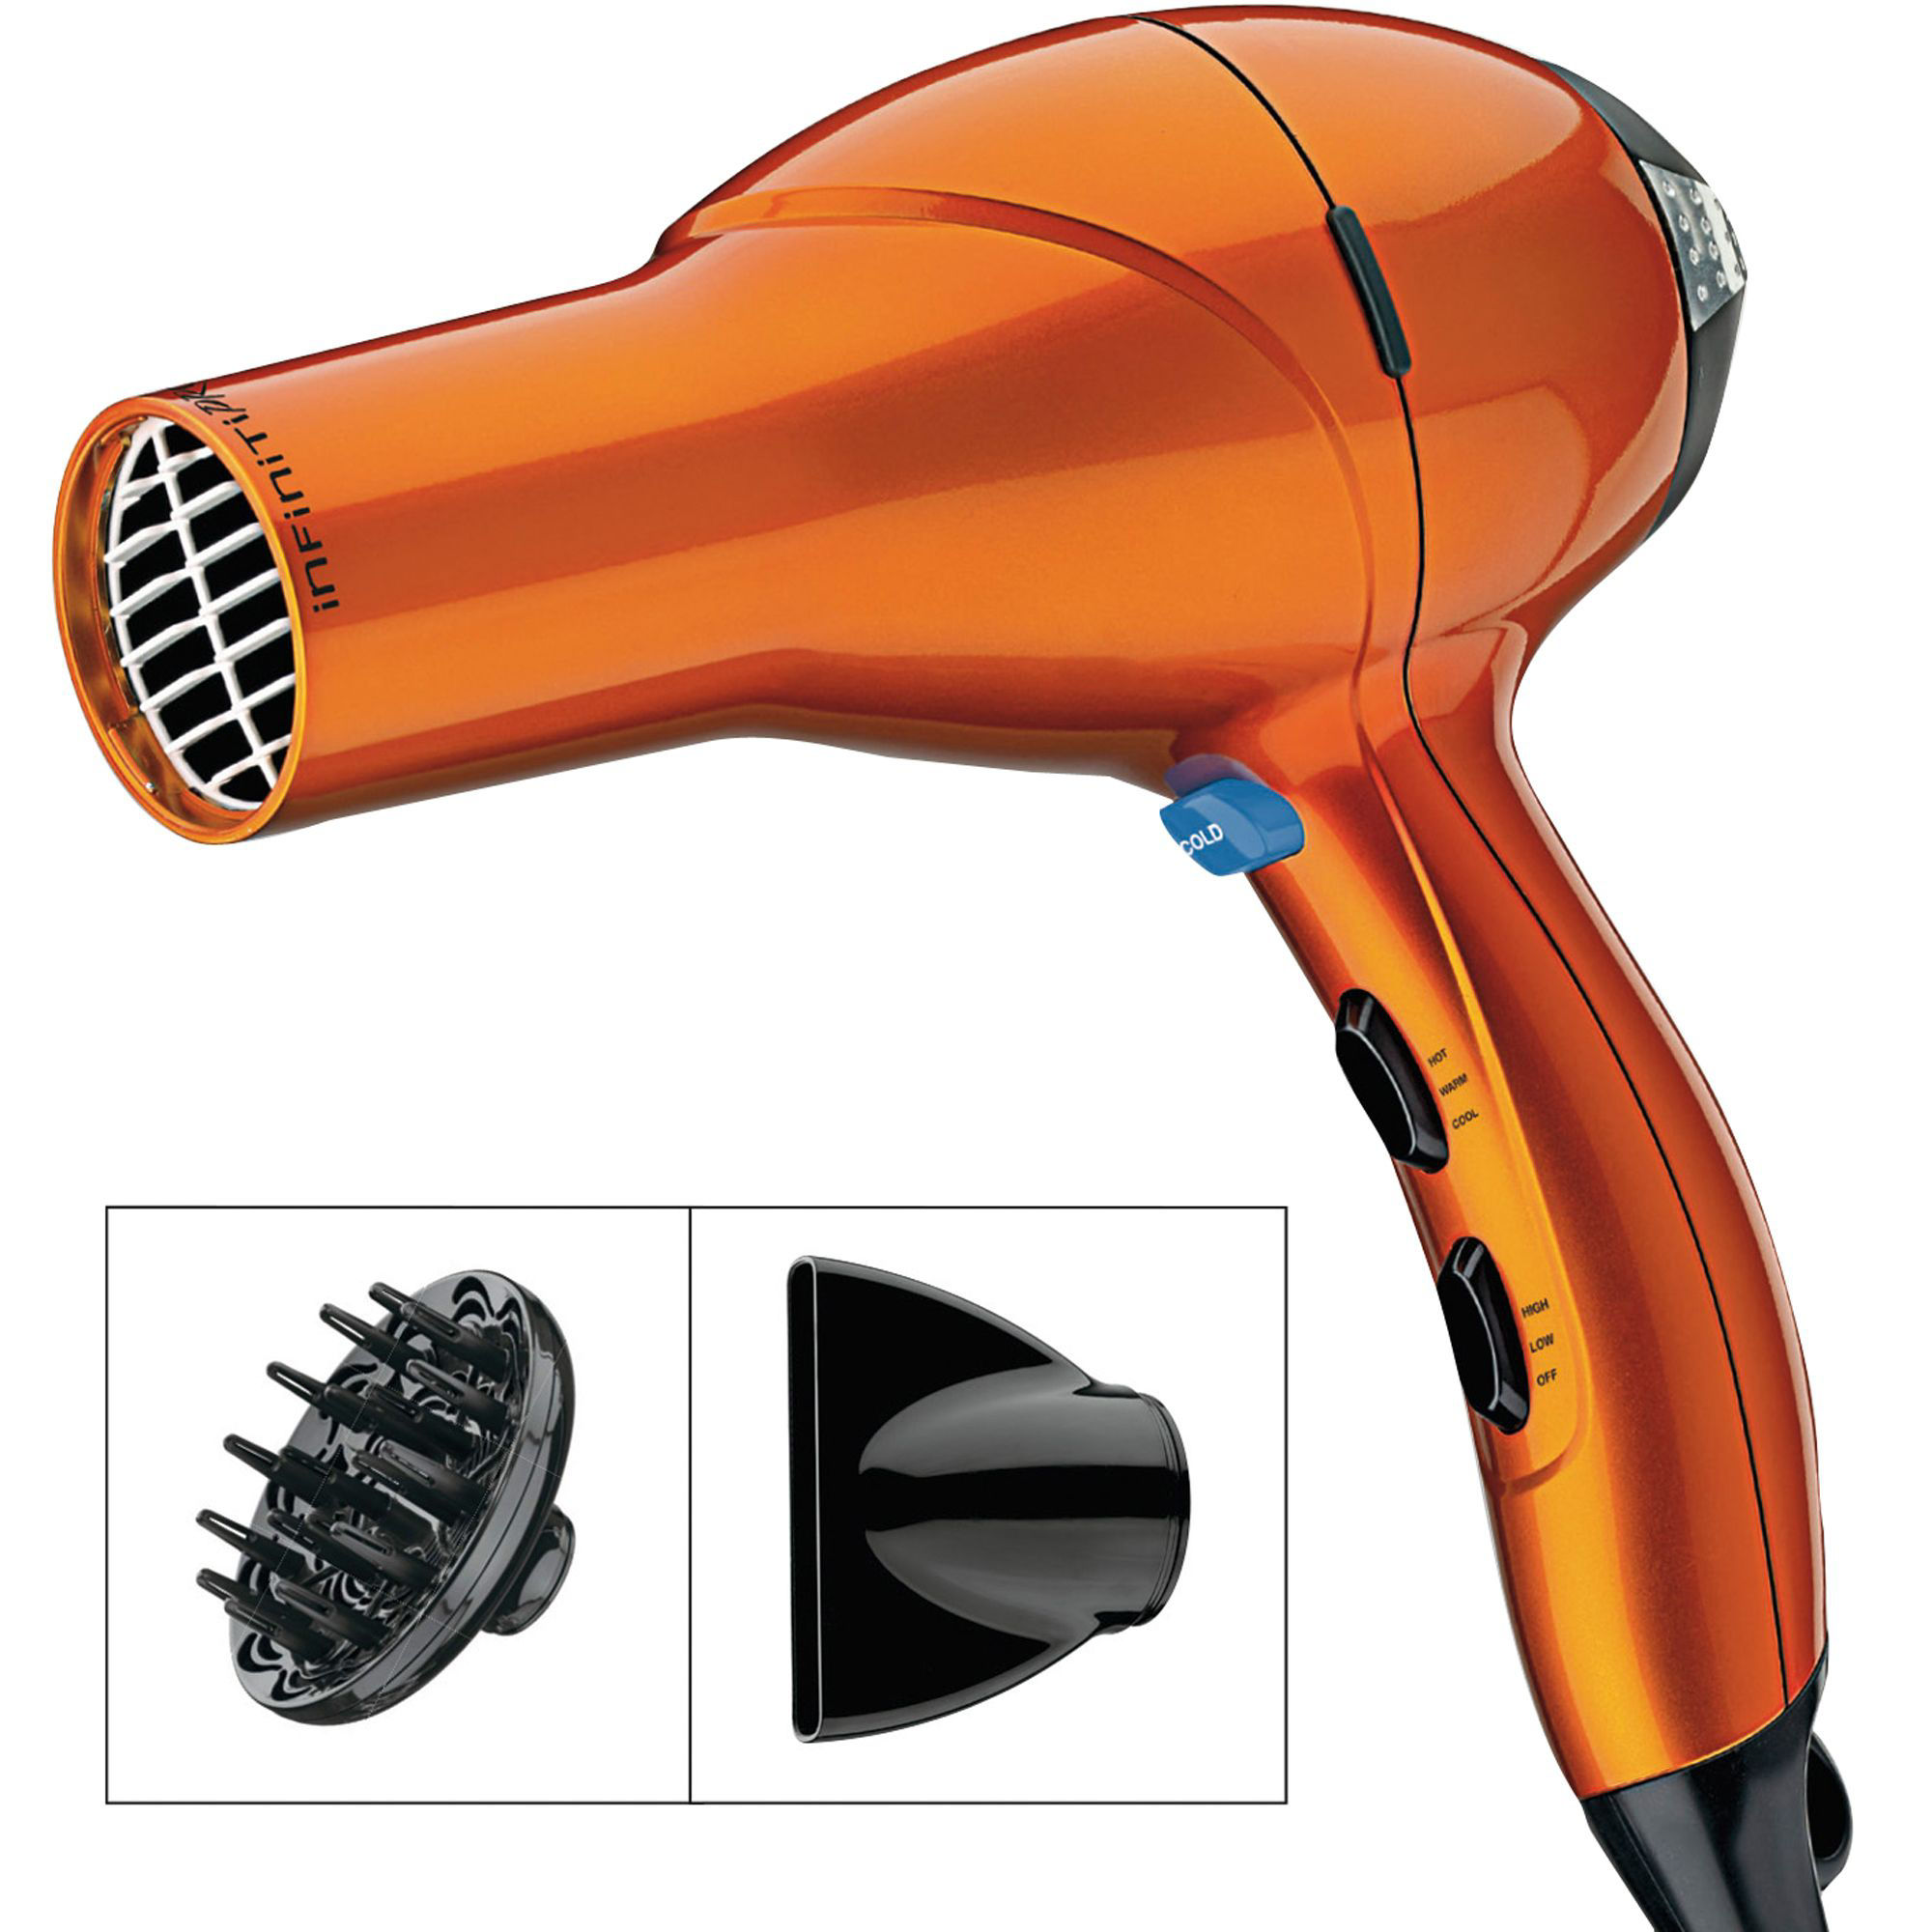 Infiniti Pro by Conair AC Hair Dryer